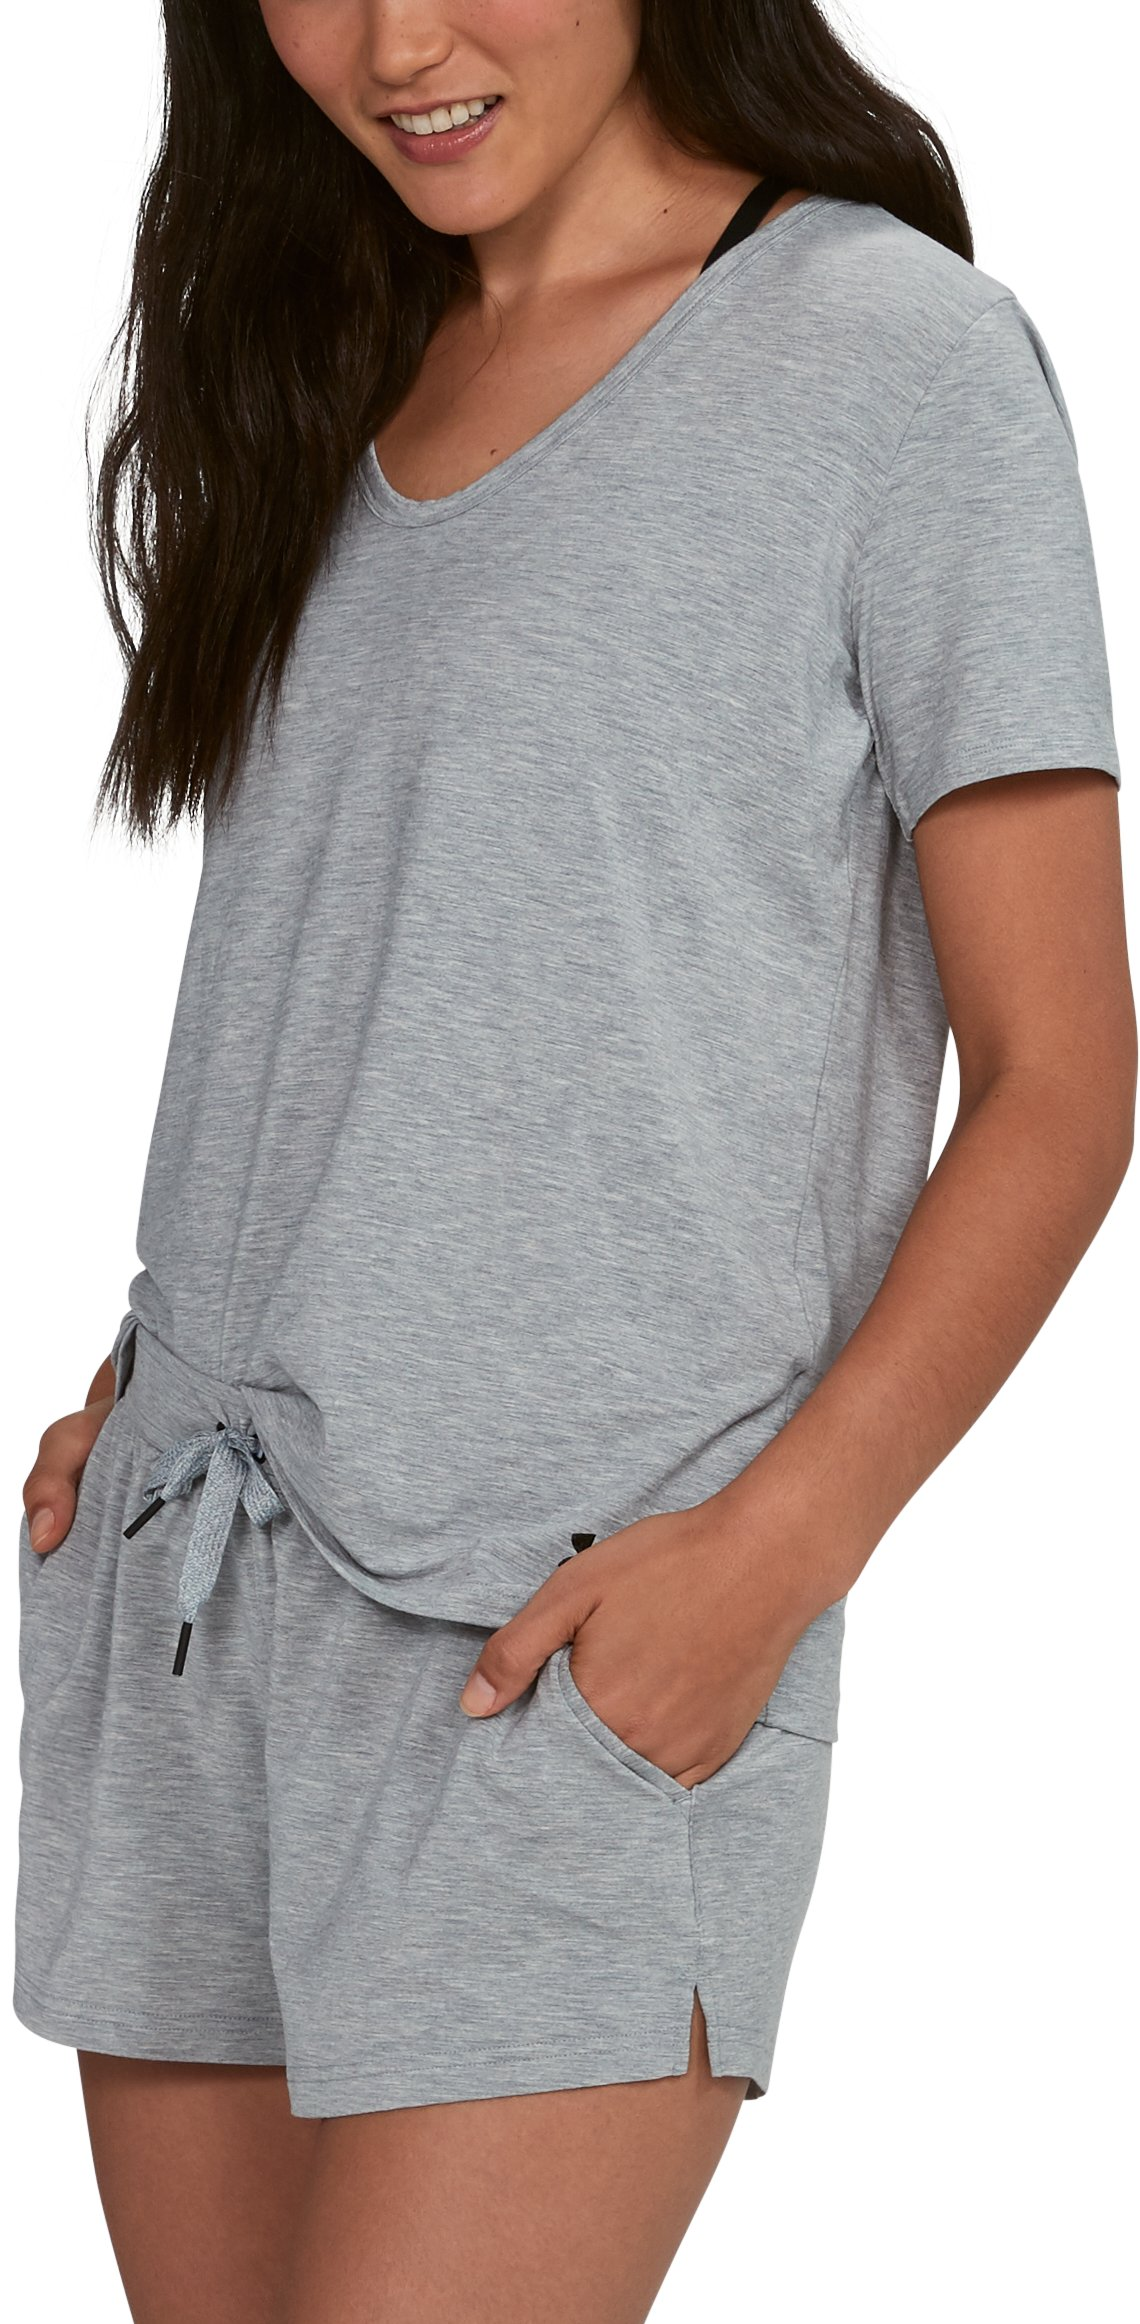 Women's Athlete Recovery Ultra Comfort Sleepwear Short Sleeve, True Gray Heather,